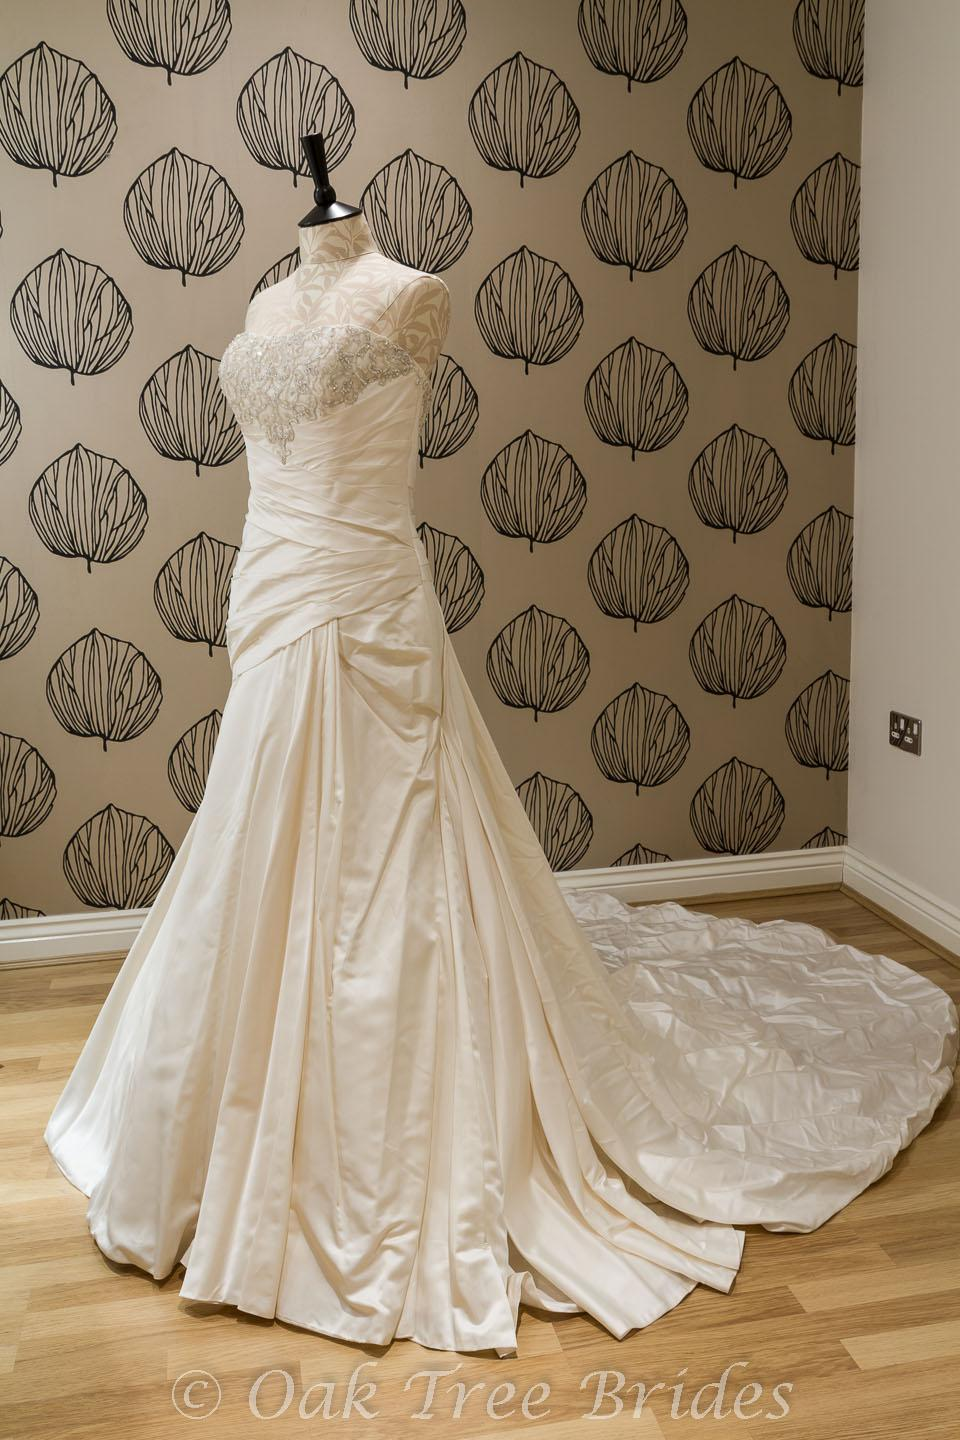 Wedding dresses for sale second hand uk wedding dresses for Second hand wedding dresses for sale